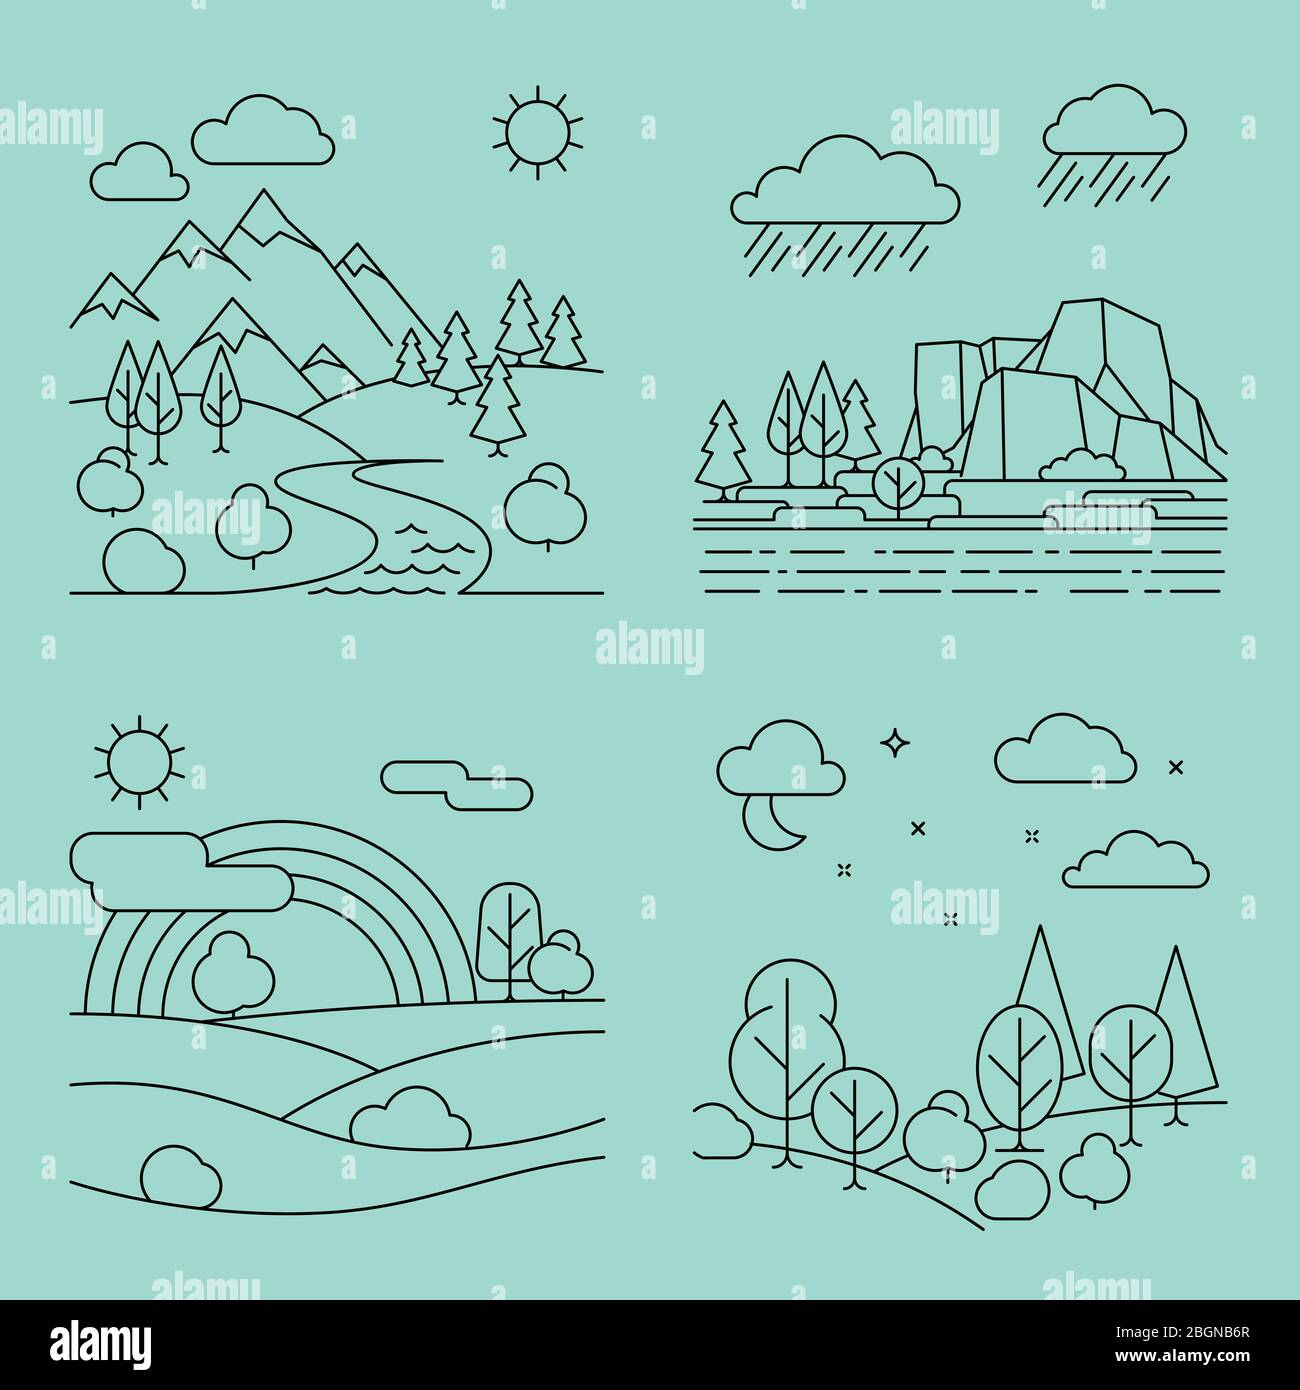 28+ River Vector Drawing